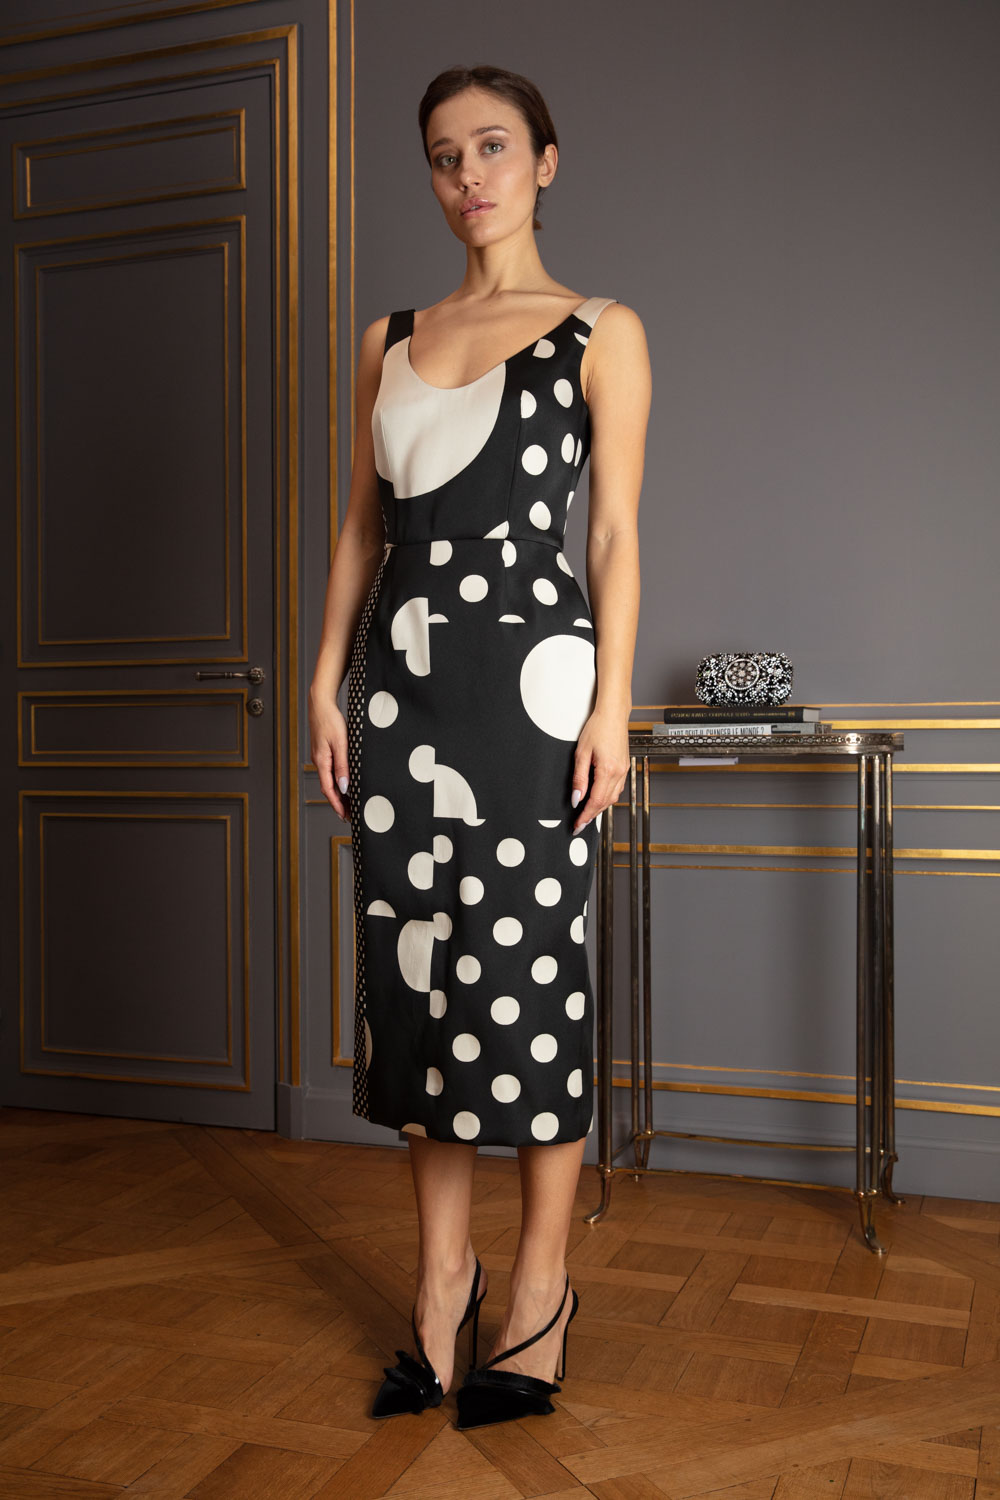 Polka dot panelled sheath dress